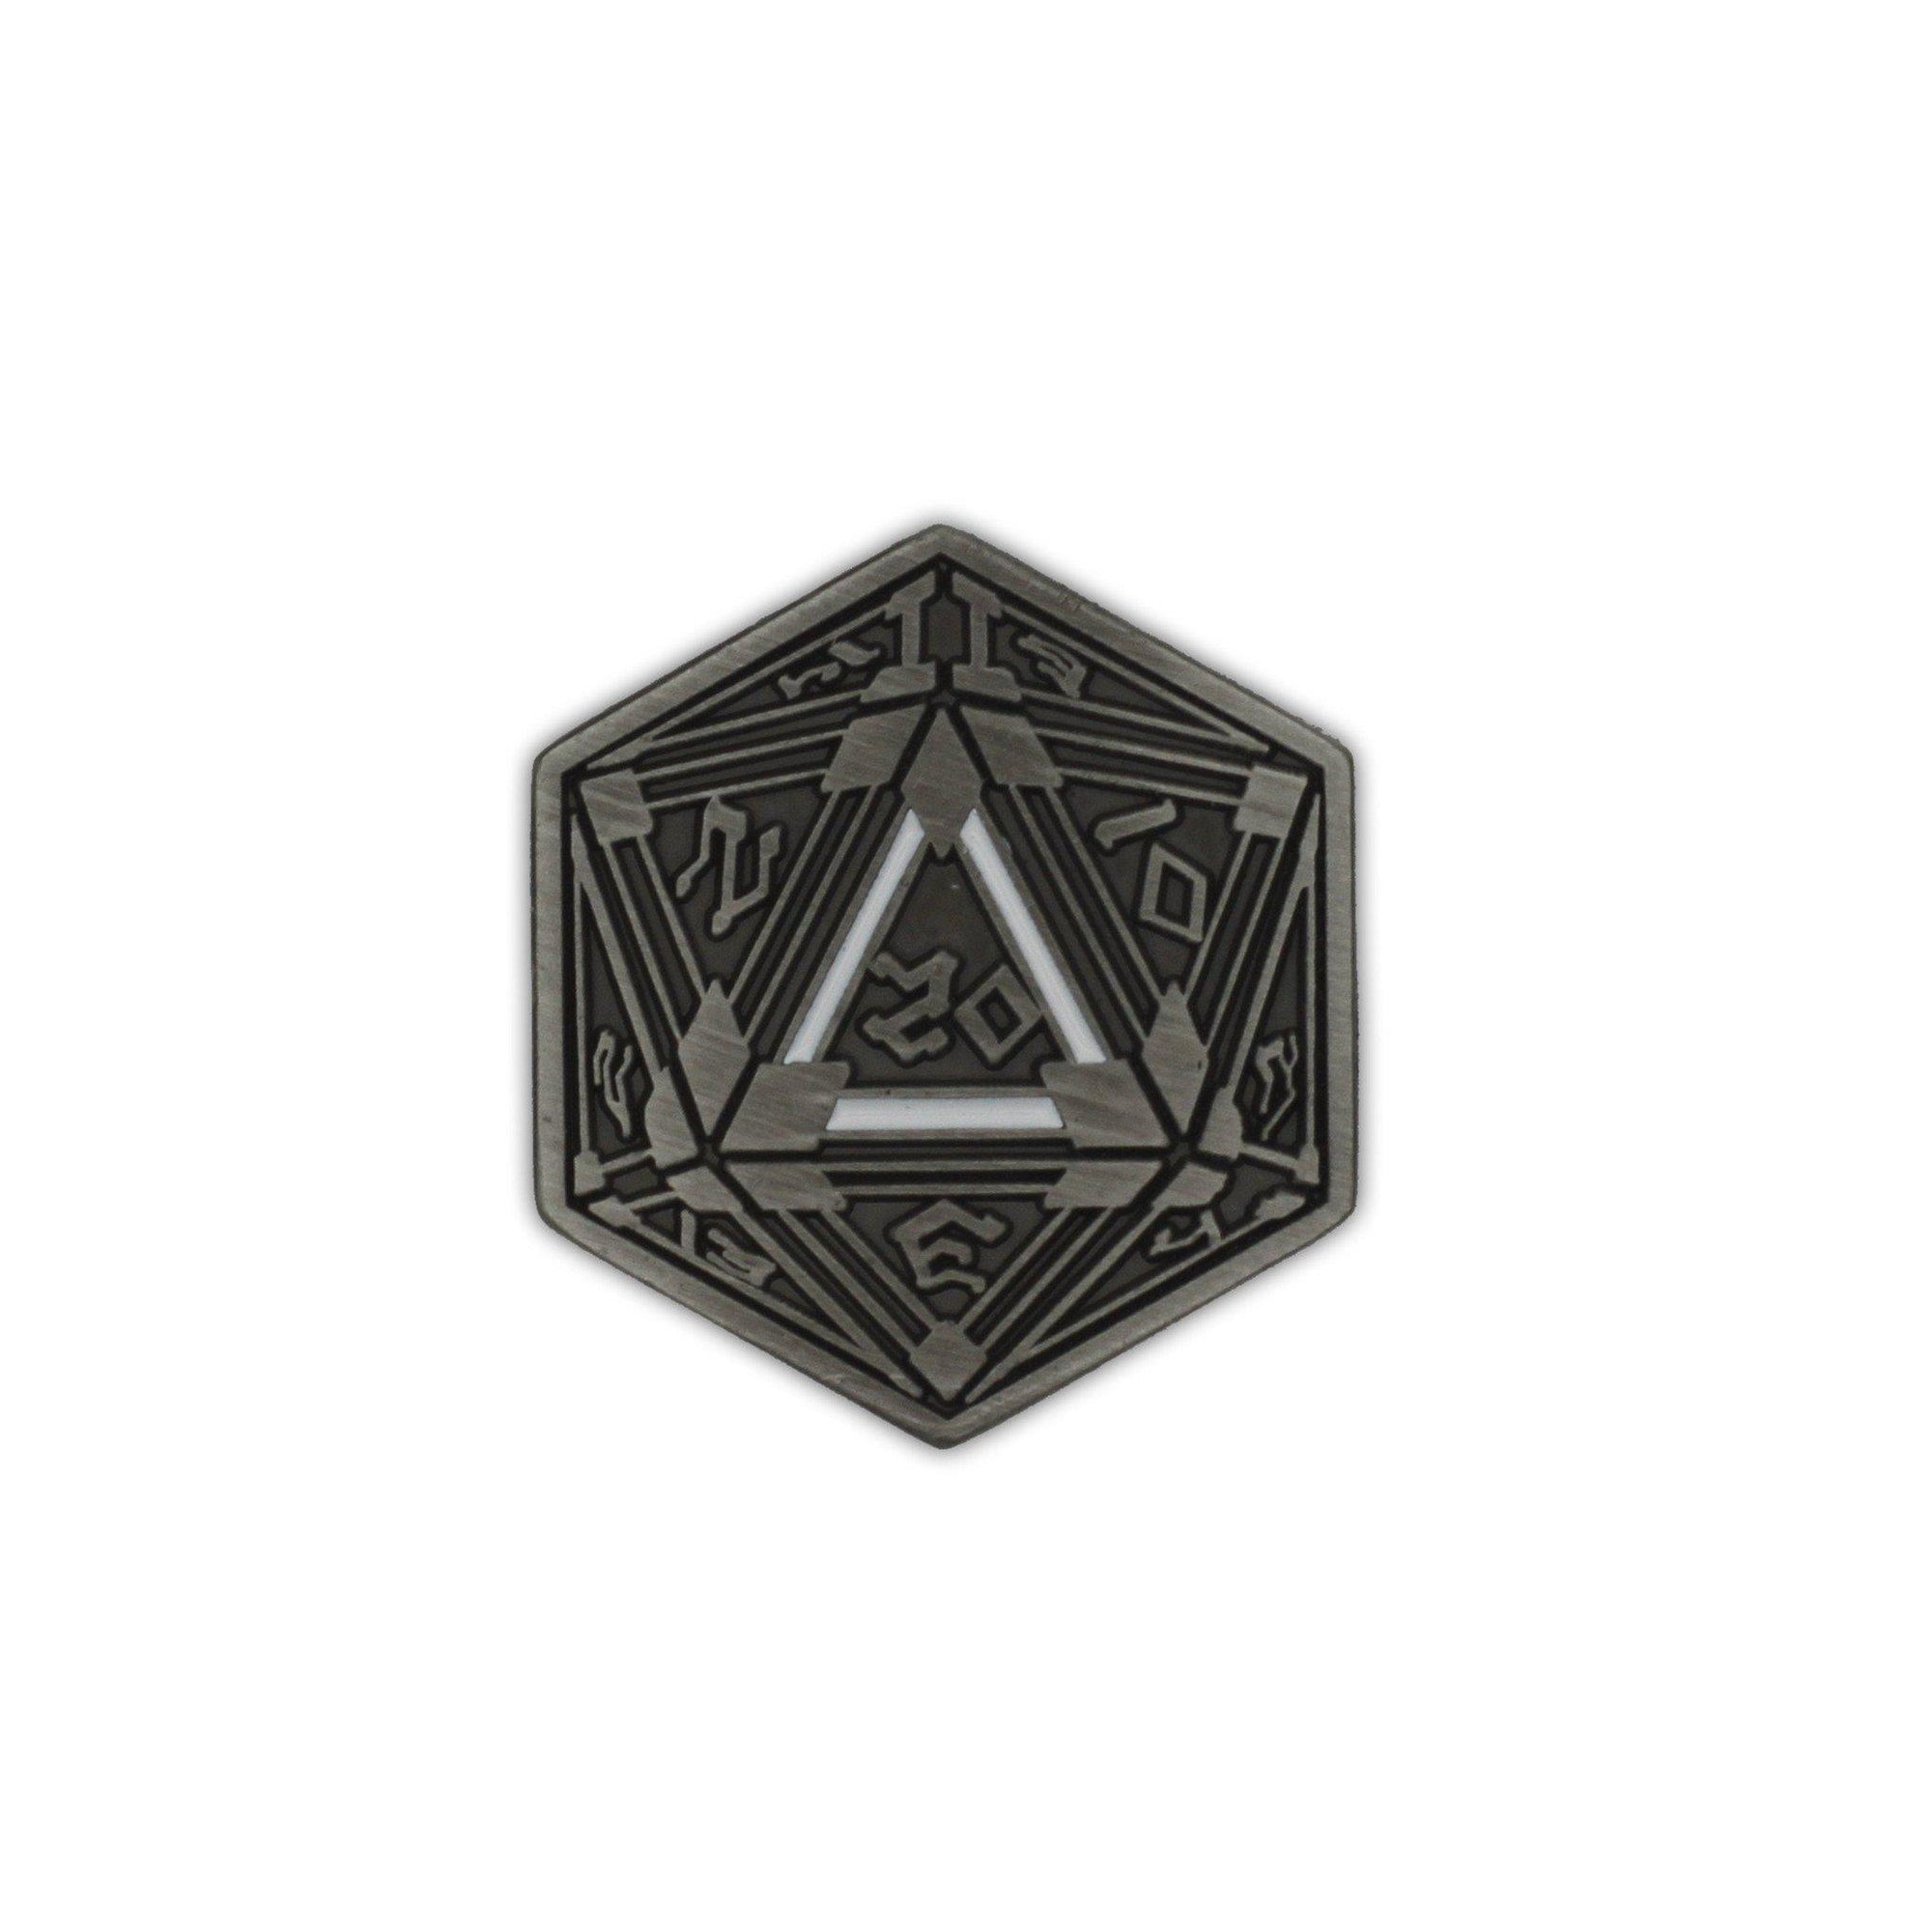 D20 Crit Metal Pin Norse Foundry Silver Plated 25MM-Pins-Norse Foundry-DND Dice-Polyhedral Dice-D20-Metal Dice-Precision Dice-Luxury Dice-Dungeons and Dragons-D&D-